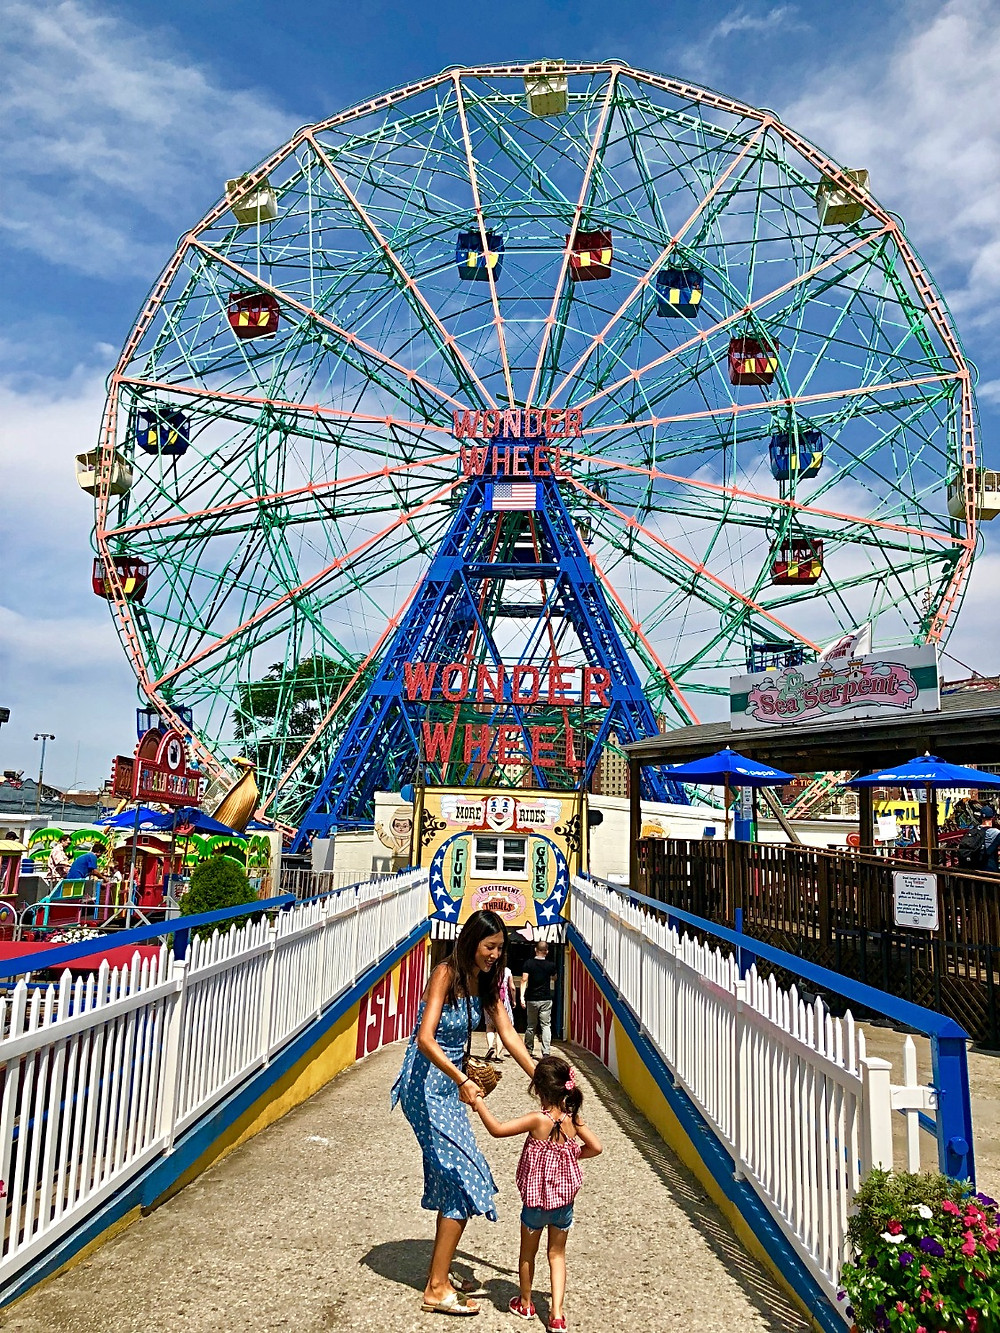 Coney Island, Wonder Wheel, Deno's Wonder Wheel Amusement Park, Coney Island with kids, Amusement Park with kids, kiddie rides, ferris wheel with kids, carnival games, Brooklyn with kids